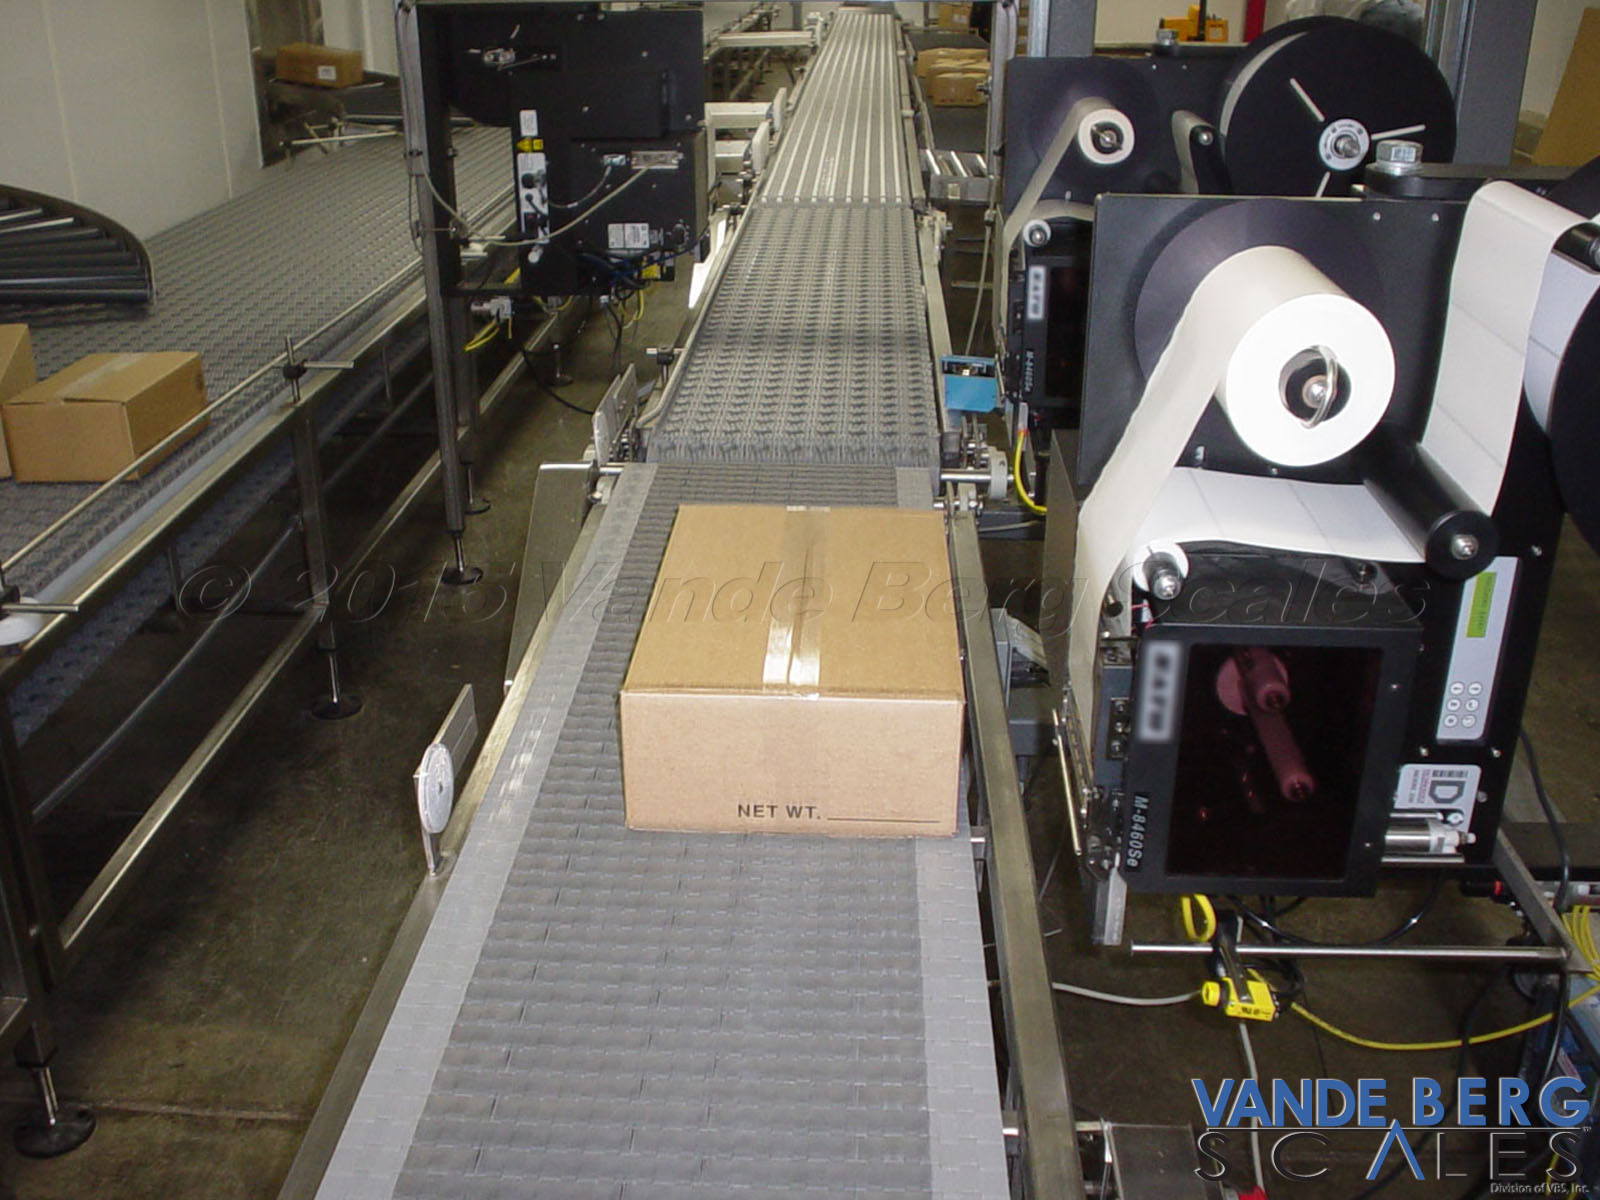 Box conveyor system which weighs and then prints a unique label for each box.  Boxes are aligned against a common edge for label application.